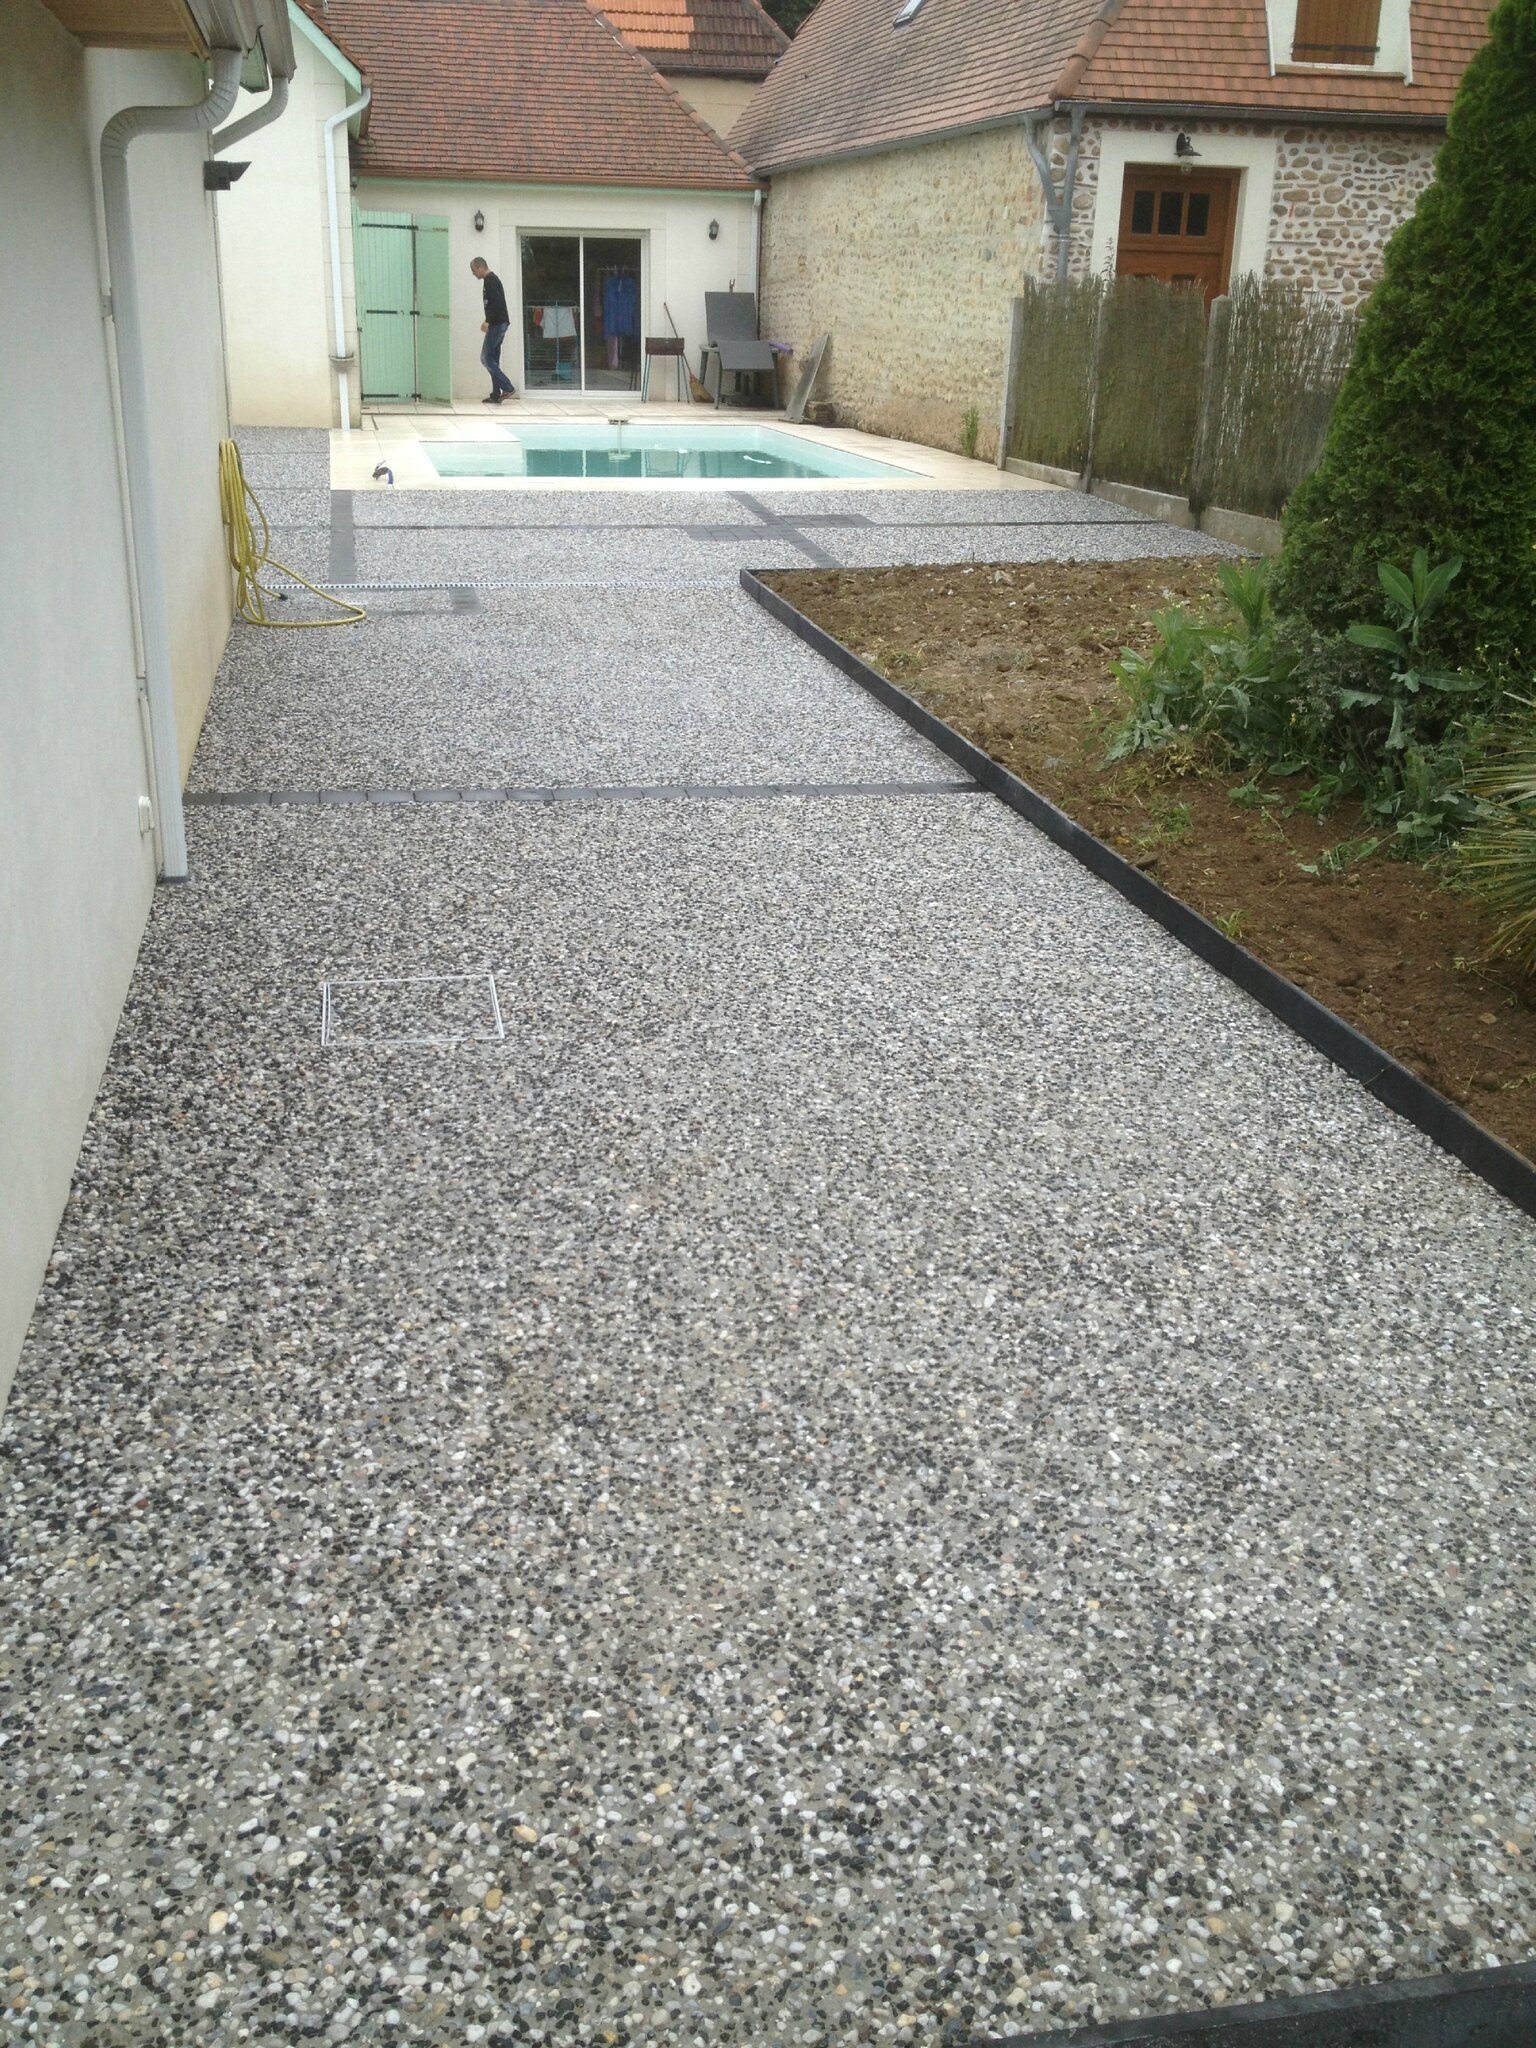 Terrasse Beton Decoratif Satp M Sallaberry Amenagement Cours Terrasses Chemins